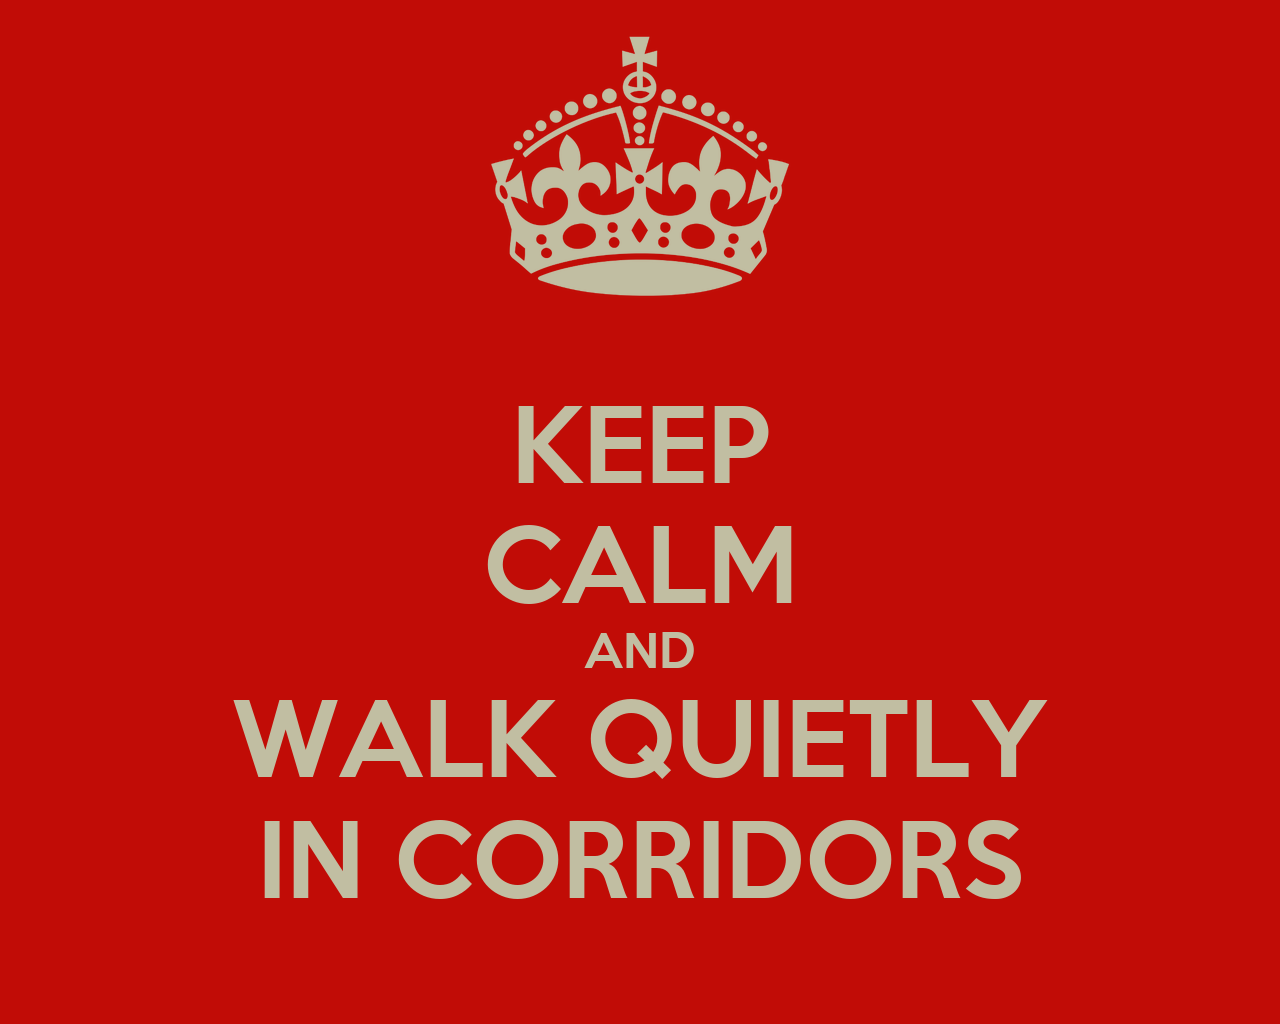 Keep Calm And Walk Quietly In Corridors Poster Mr D Entwisle Keep